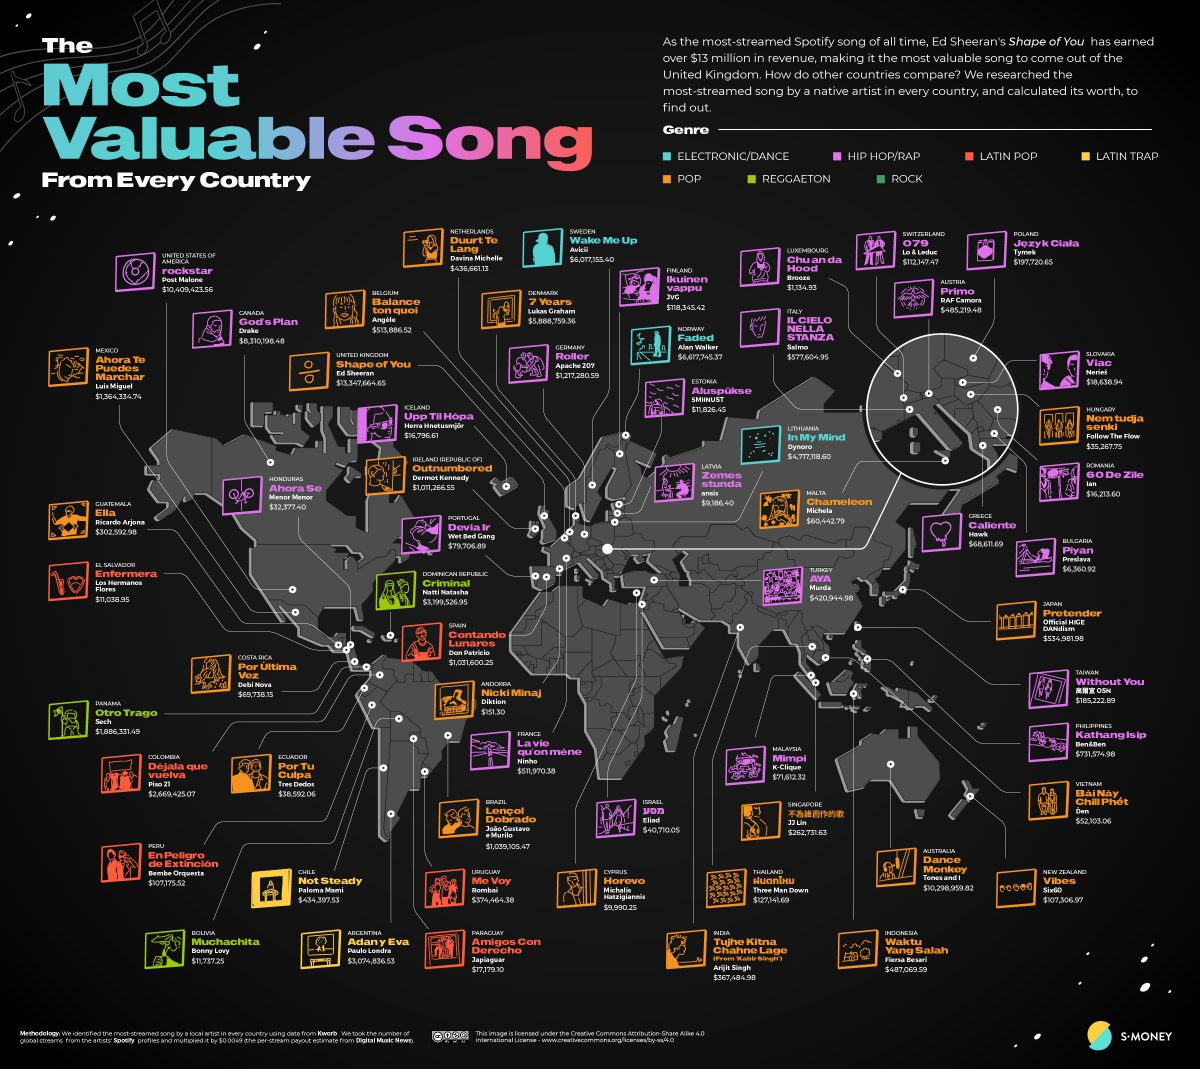 S-Money: The Most Valuable Song From Every Country World Map